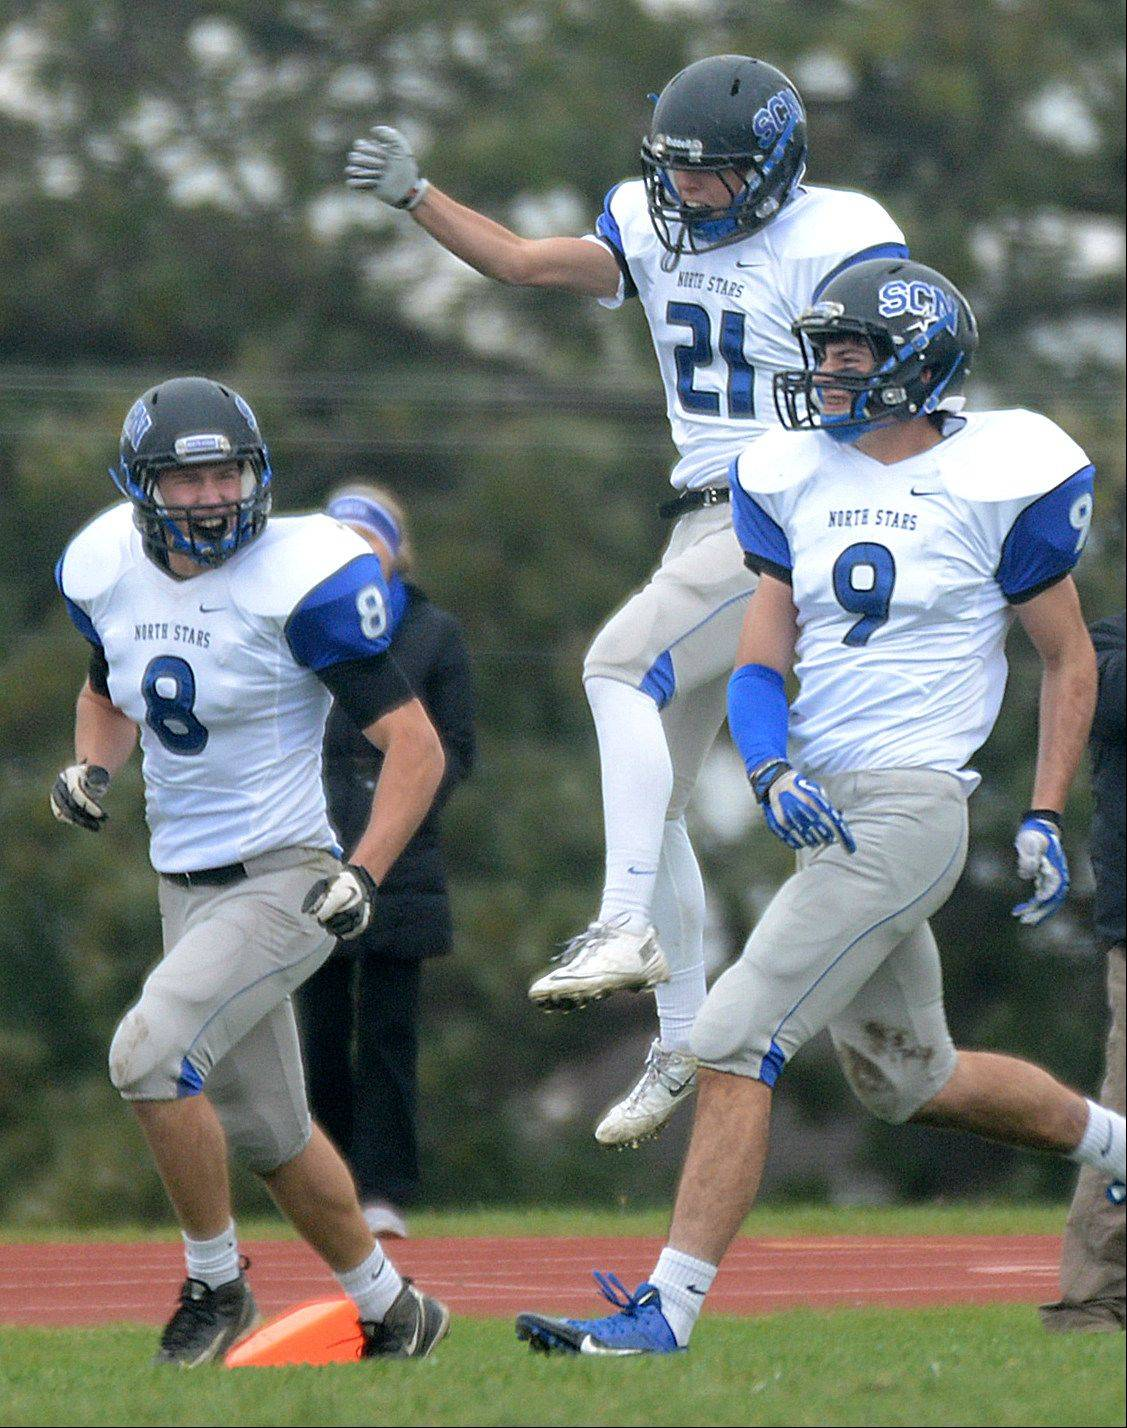 St. Charles North's, from left, Nick Drawant, Dylan Hunter, and Cameron MacKenzie celebrate a touchdown which was scored on a South Elgin fumble in the end zone at South Elgin on Saturday.